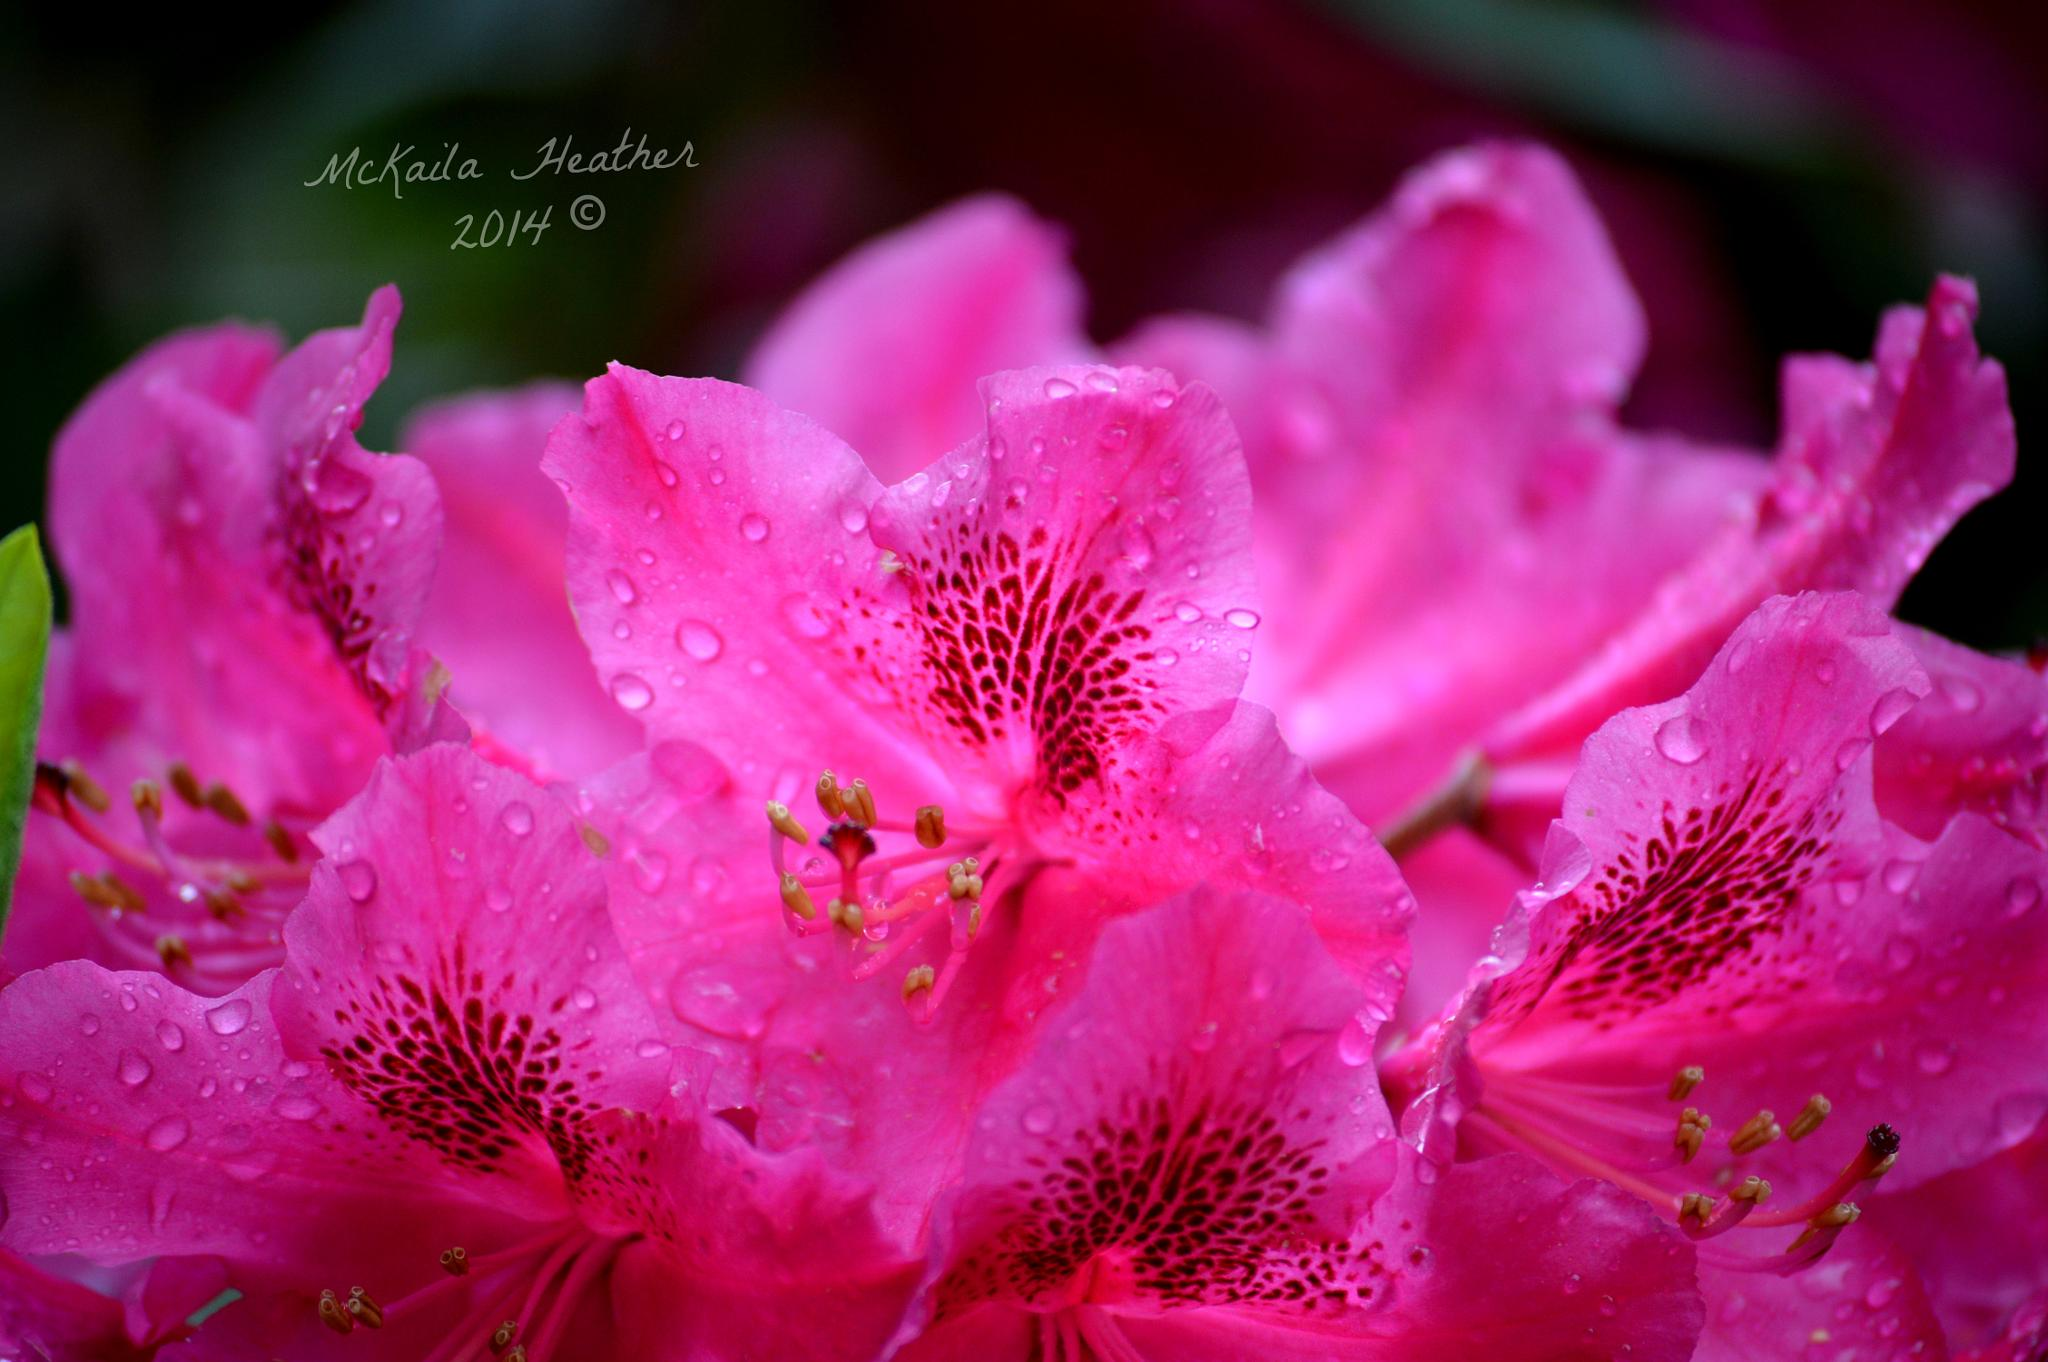 Wet Flowers by McKailaHeather